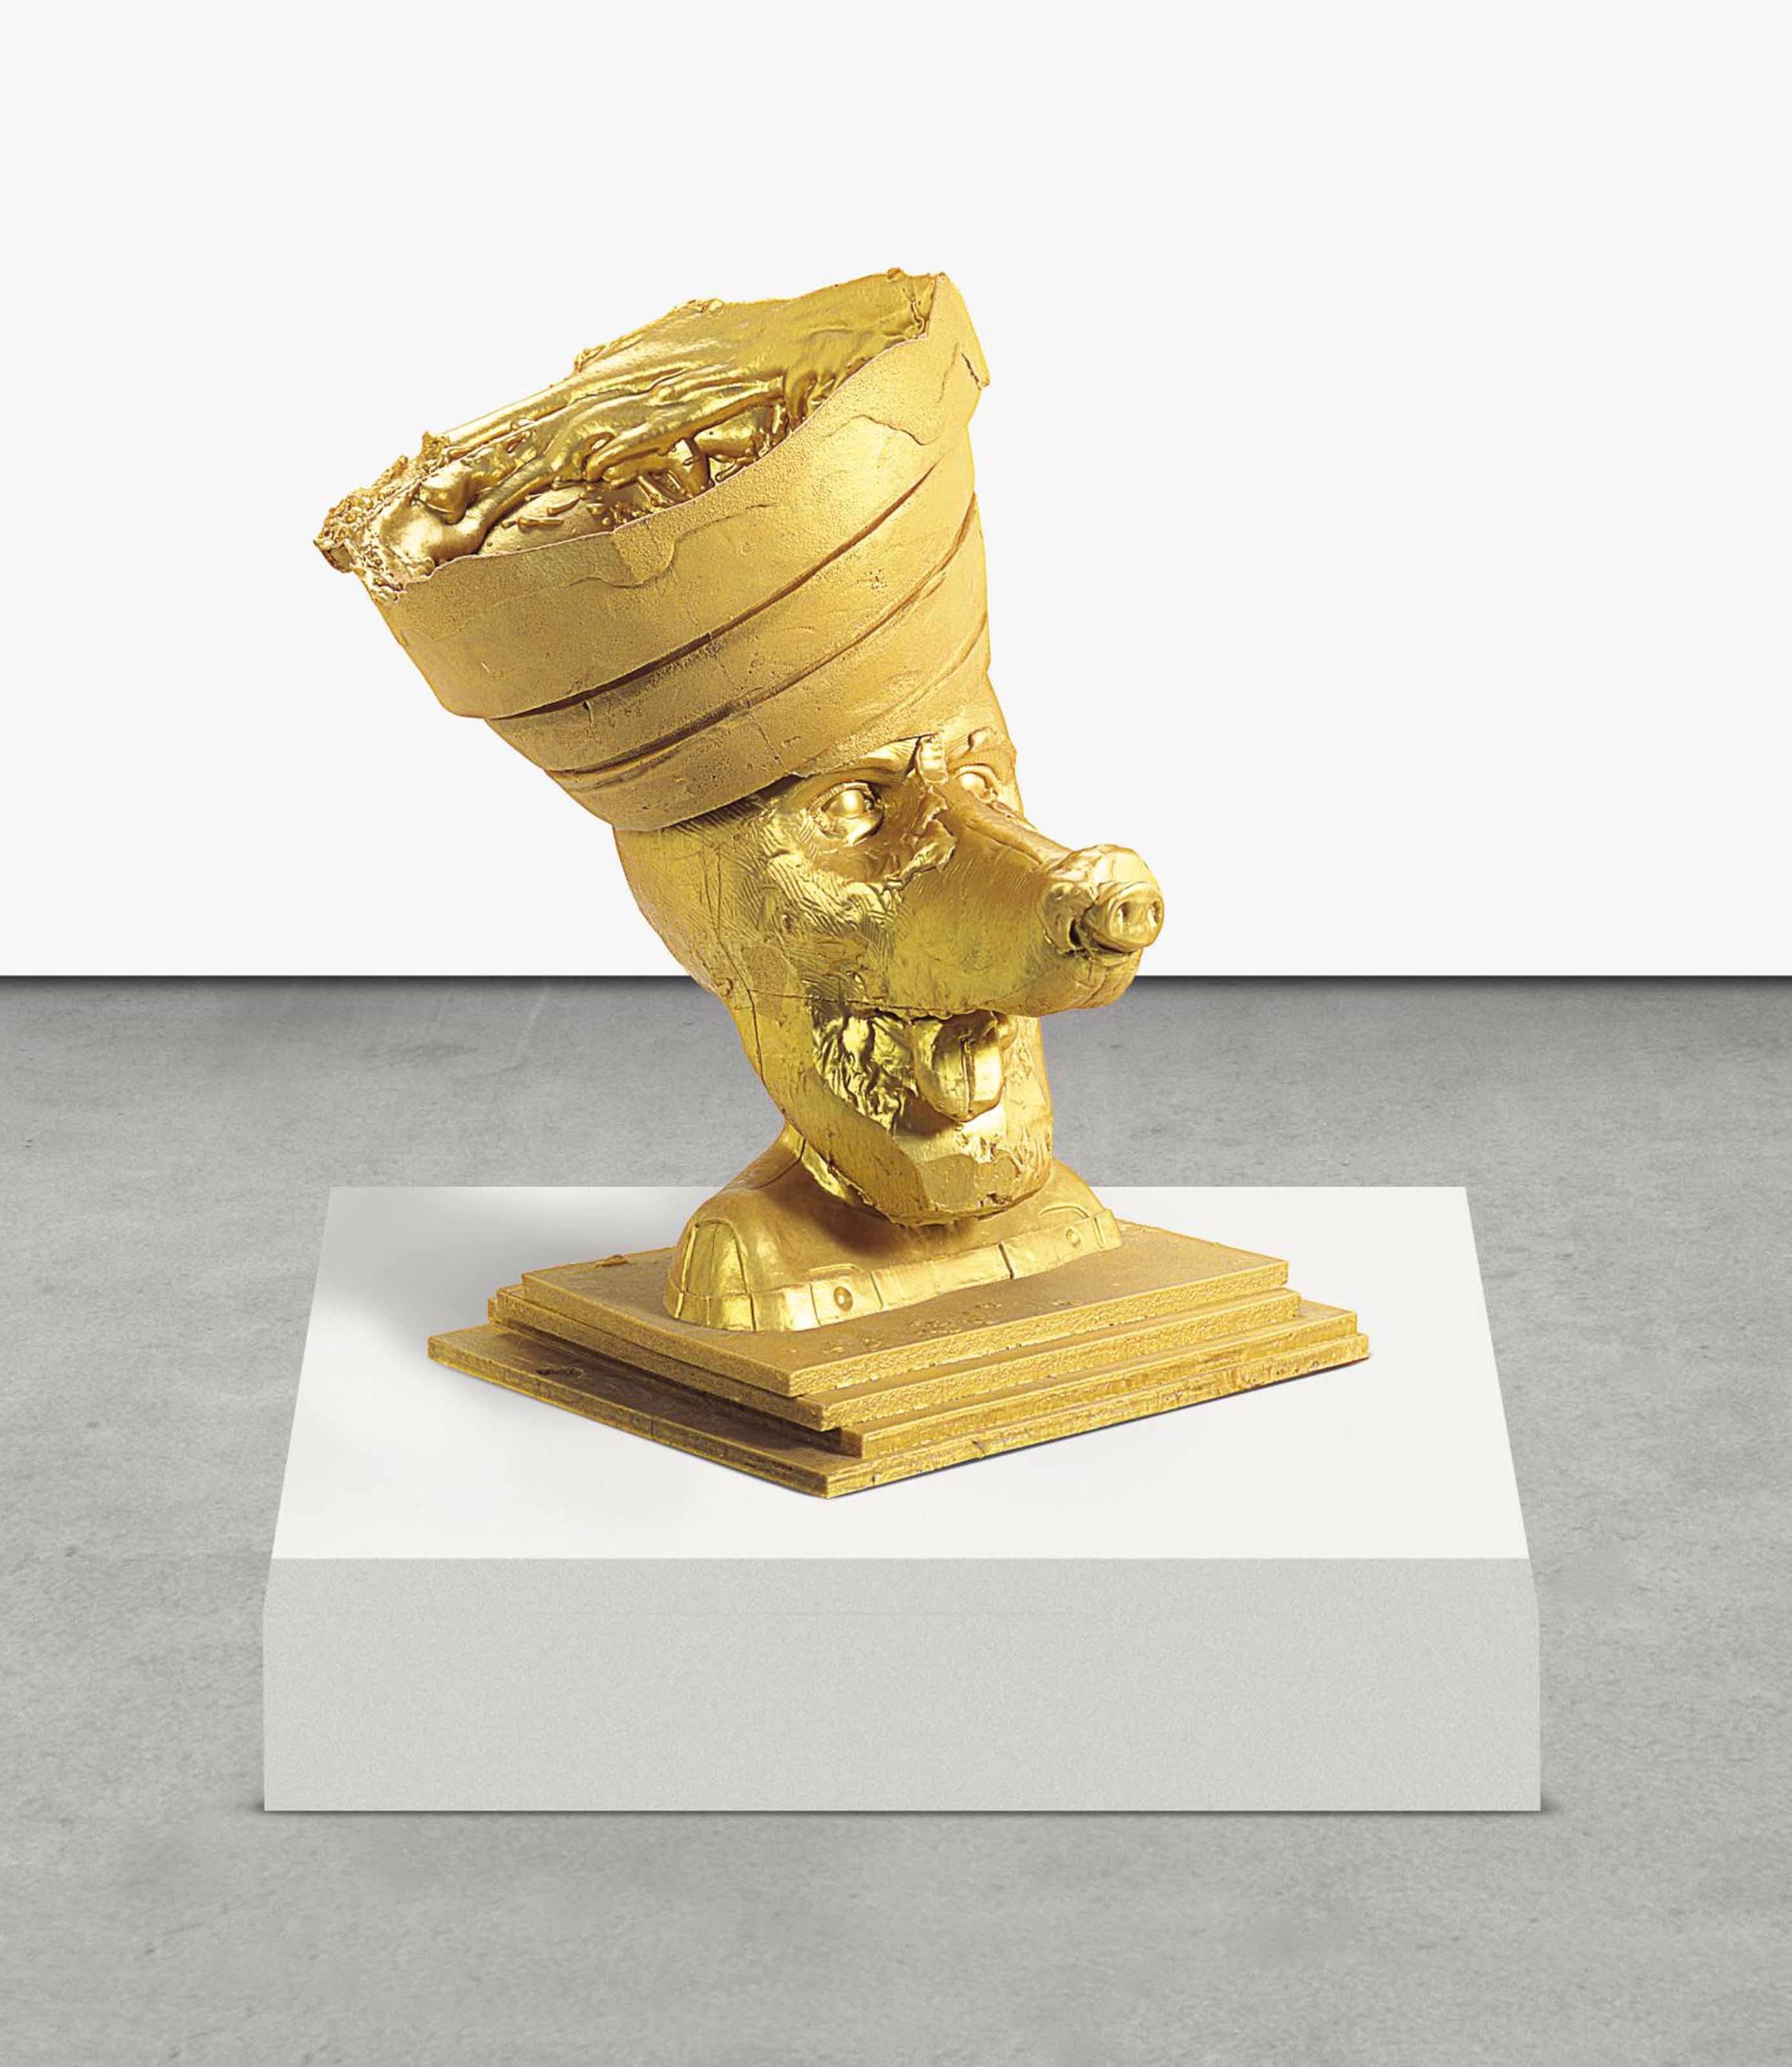 Gold Butter Dog 1, Guggenheim Crown, Silicon